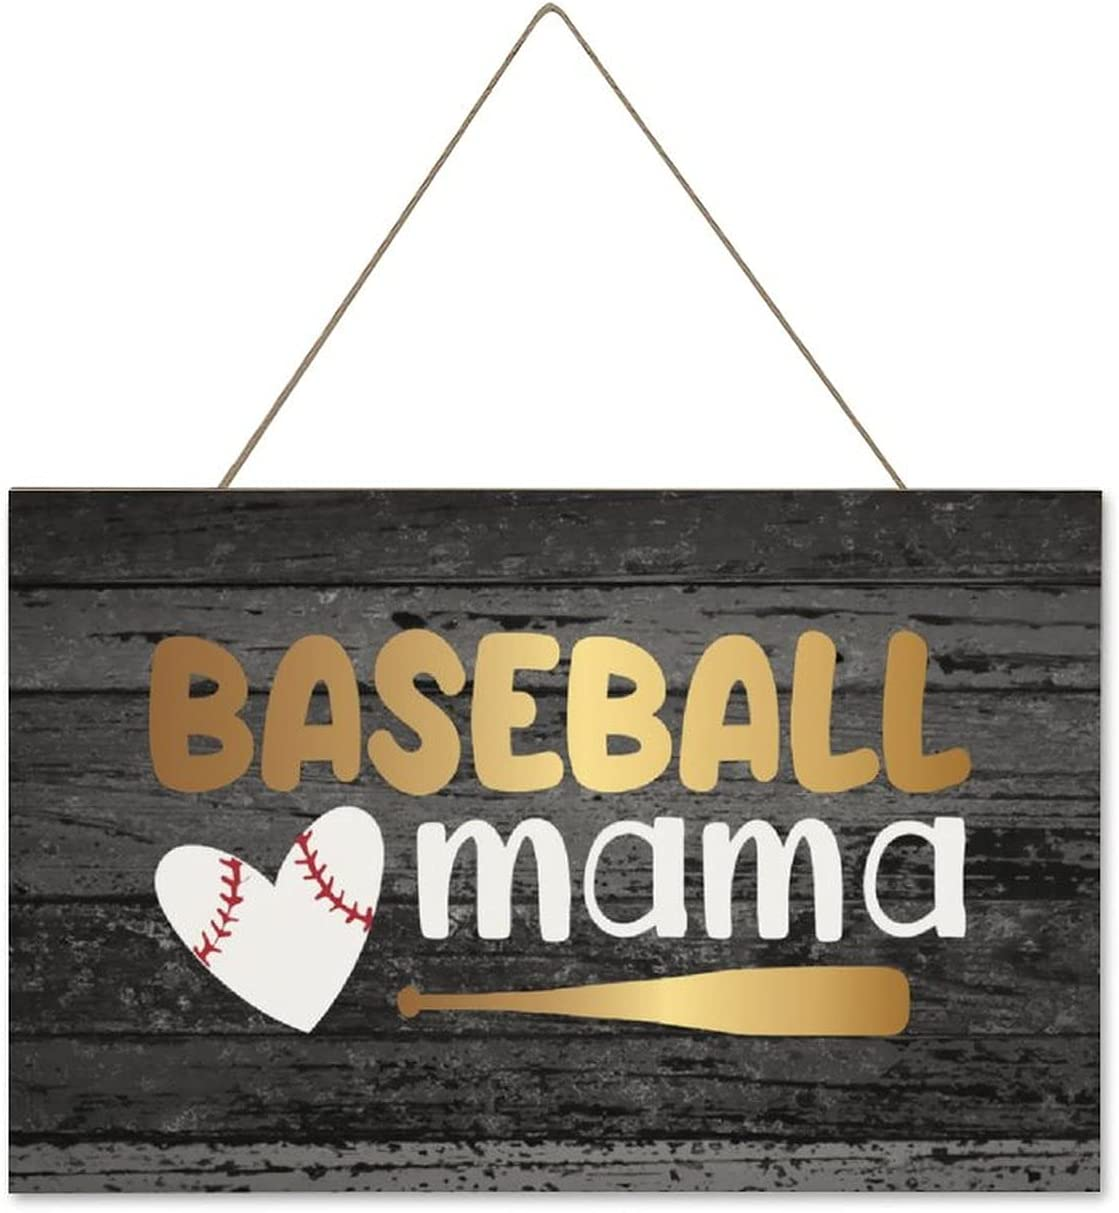 by Unbranded Wooden Wall Decor Farmhouse Funny Bathroom Sign Country Restroom Wall Decor for Home School Office Sign Wooden Letters Baseball Mama, Baseball Mom, Baseball Ball 10x16 Inch